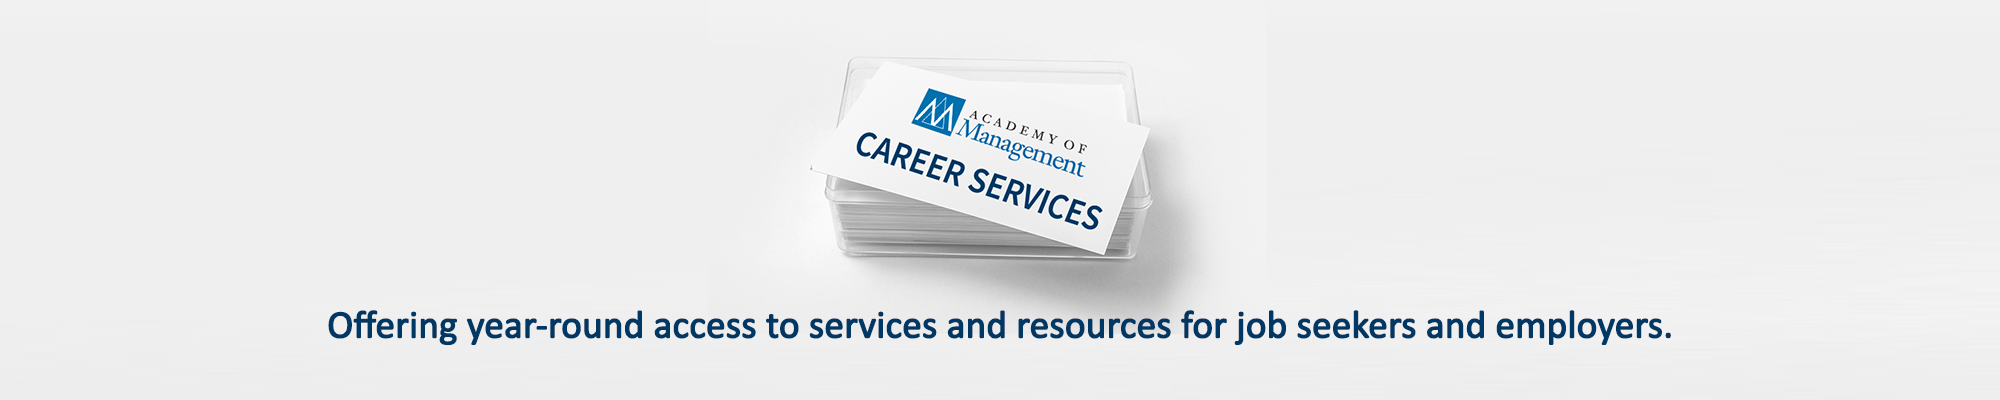 CareerServicesWebBanner_October2020